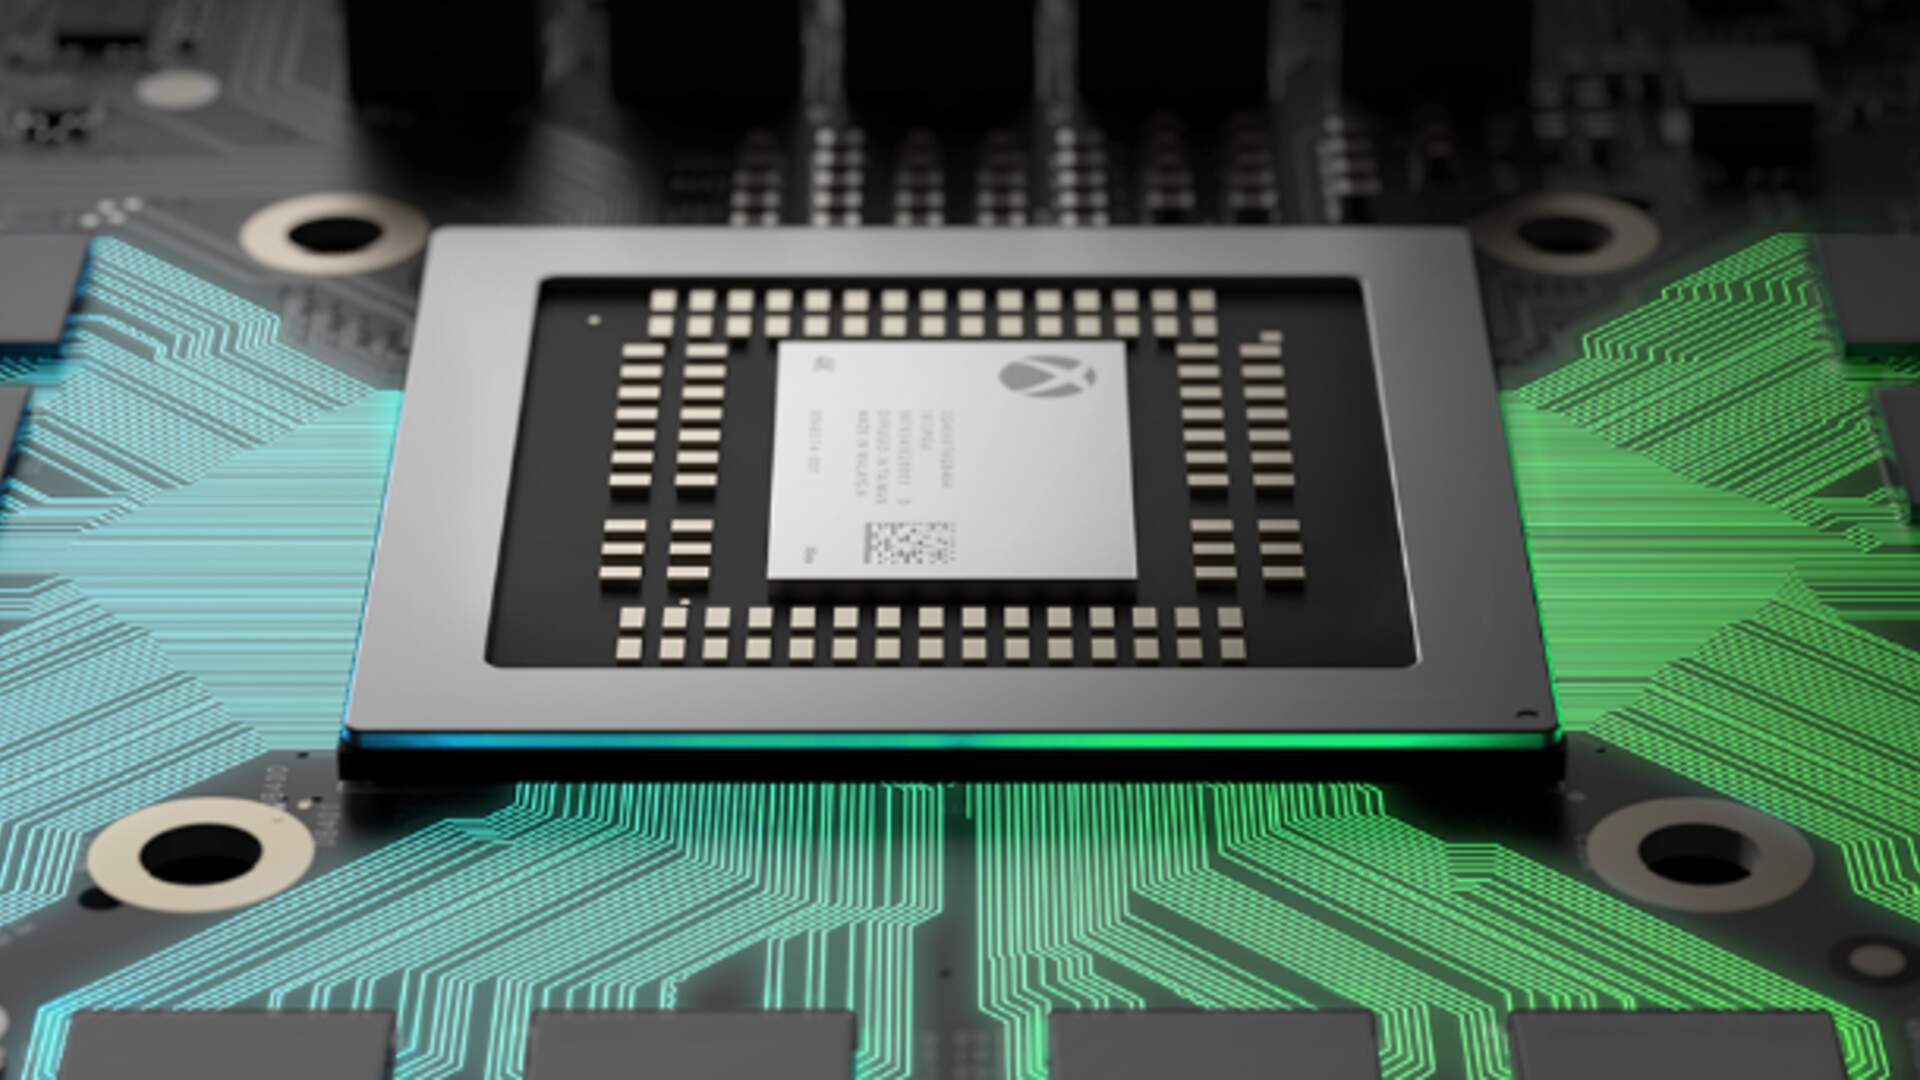 Xbox Project Scorpio's Strength Isn't Enough To Lead The Pack